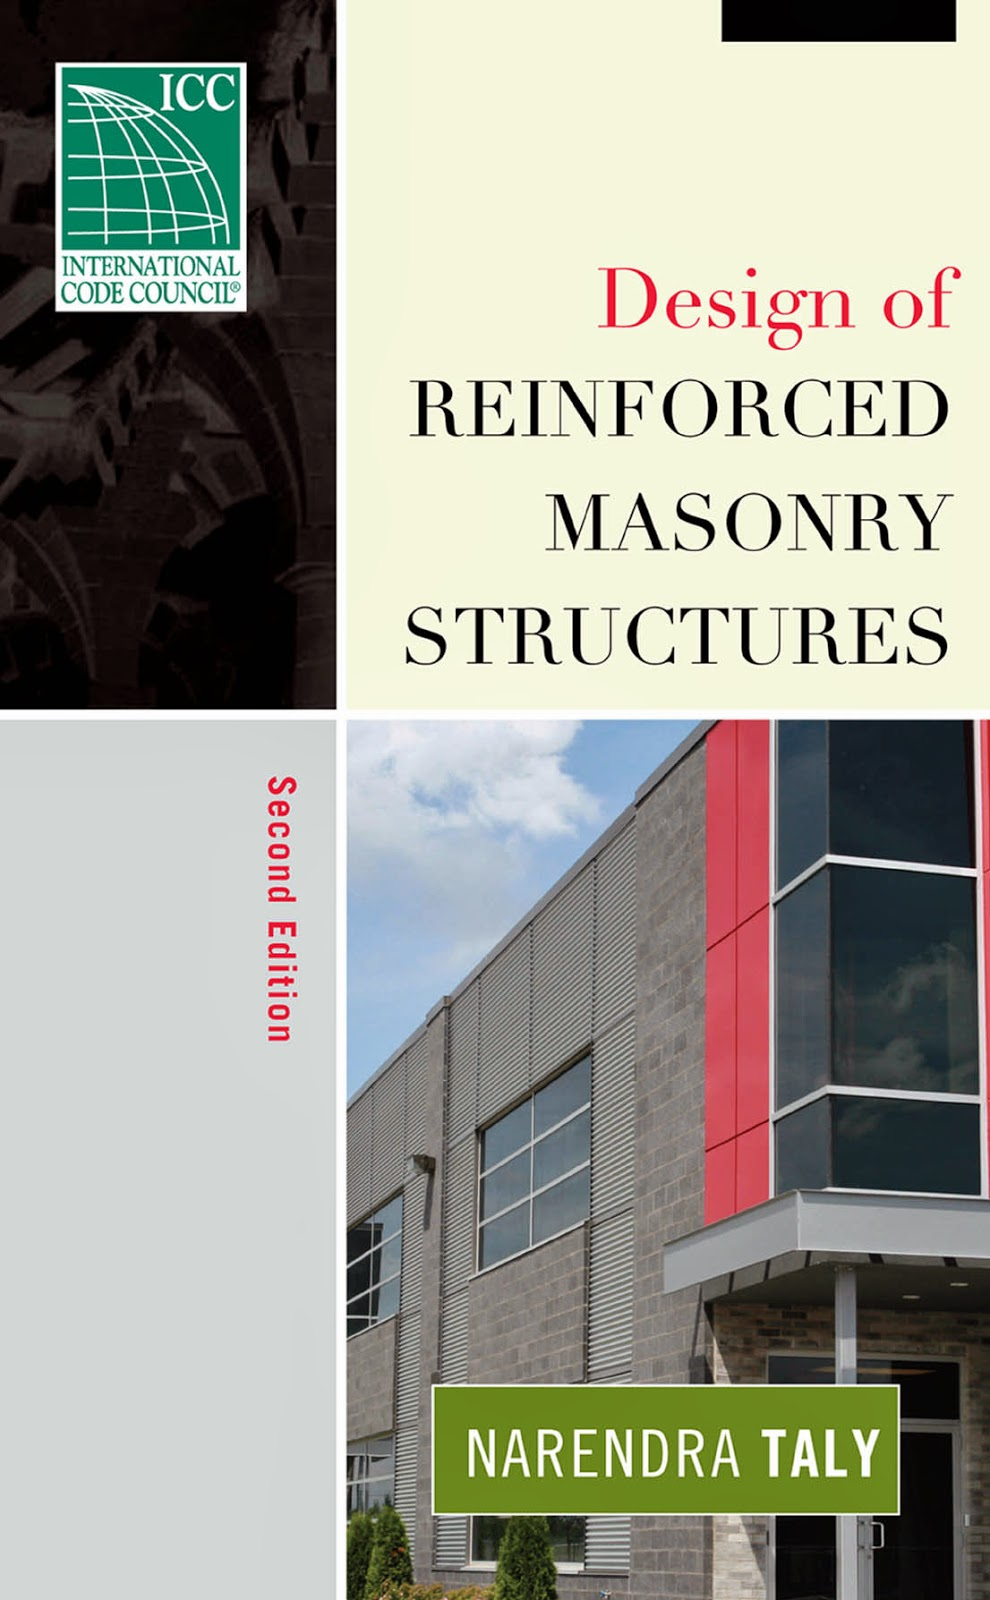 Book: Design of Reinforced Masonry Structures 2nd Edition by Narendra Taly